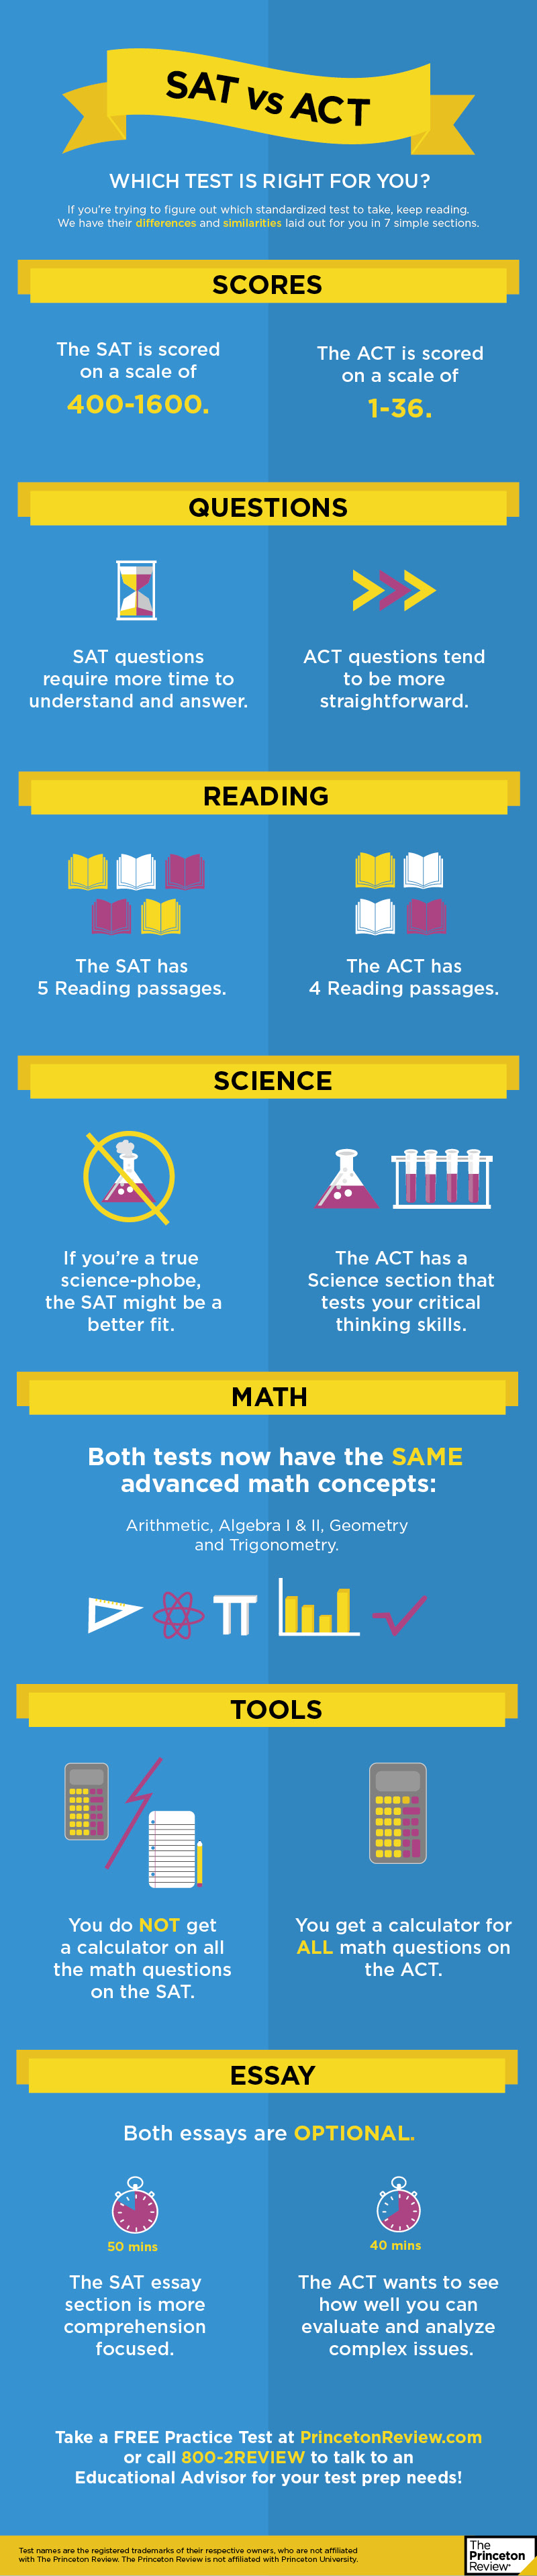 Sat vs act infographic the princeton review new sat vs act infographic v2 nvjuhfo Image collections